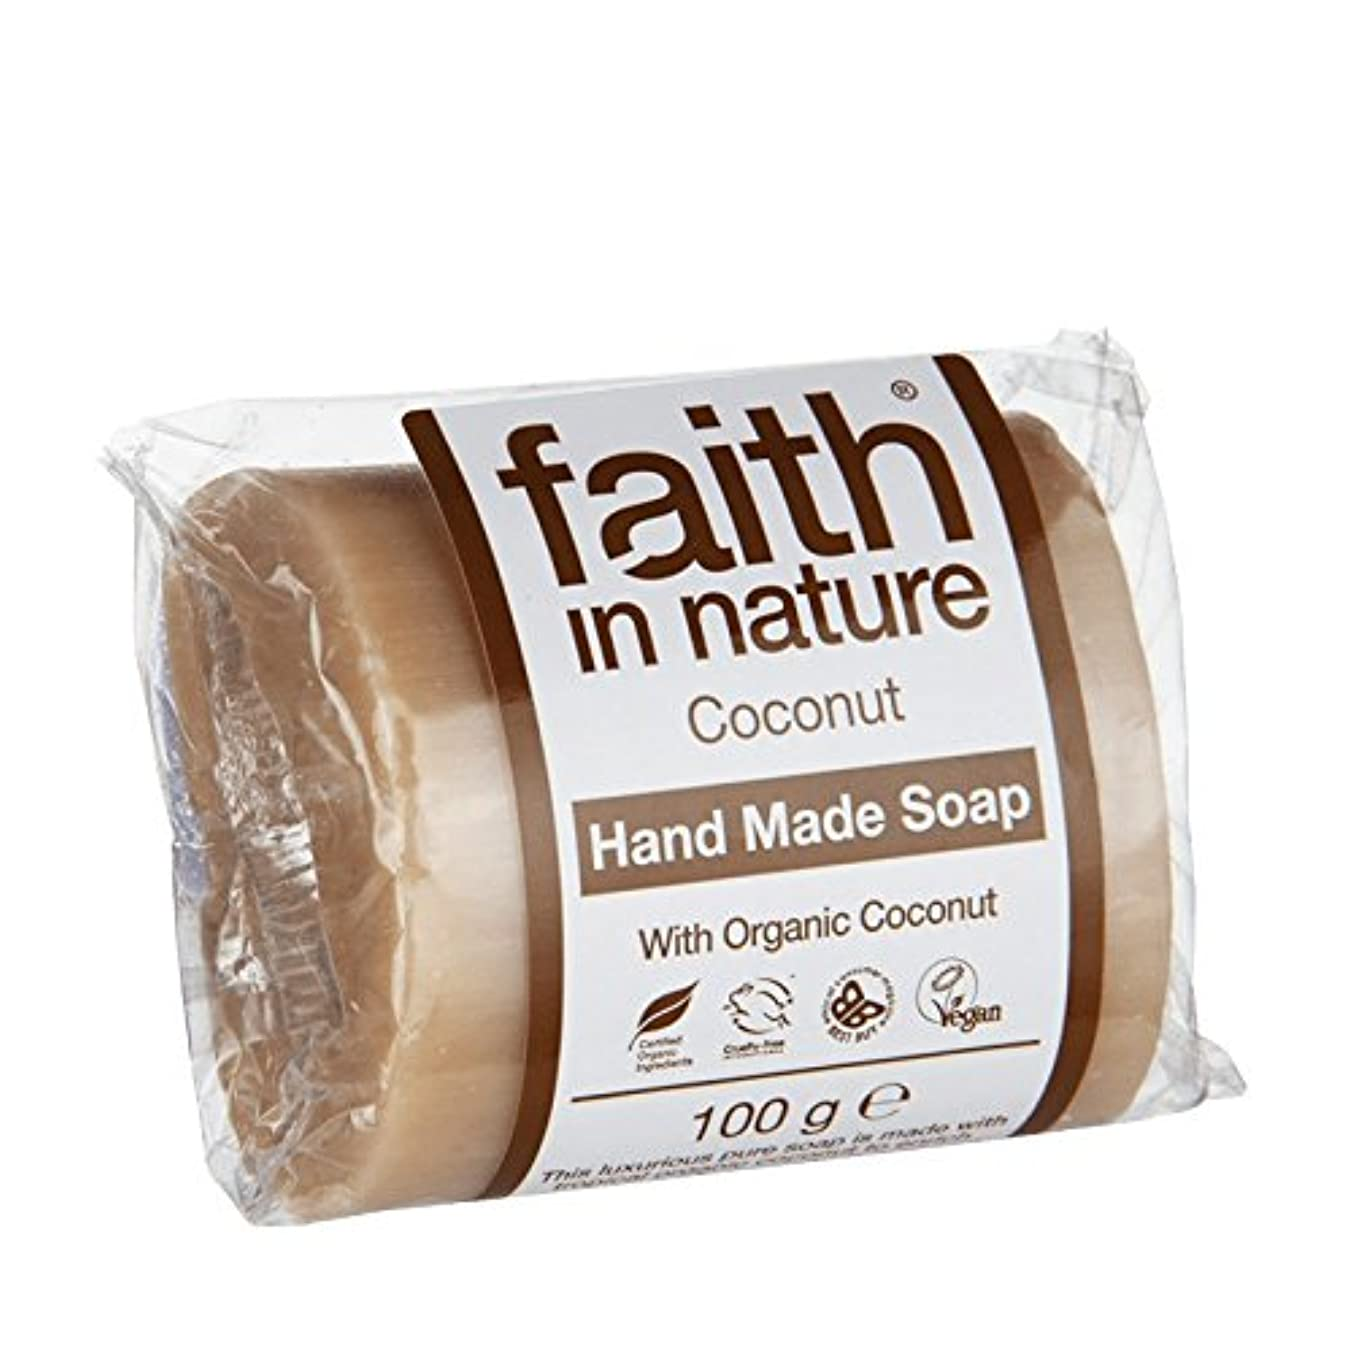 Faith in Nature Coconut Soap 100g (Pack of 2) - 自然ココナッツ石鹸100グラムの信仰 (x2) [並行輸入品]